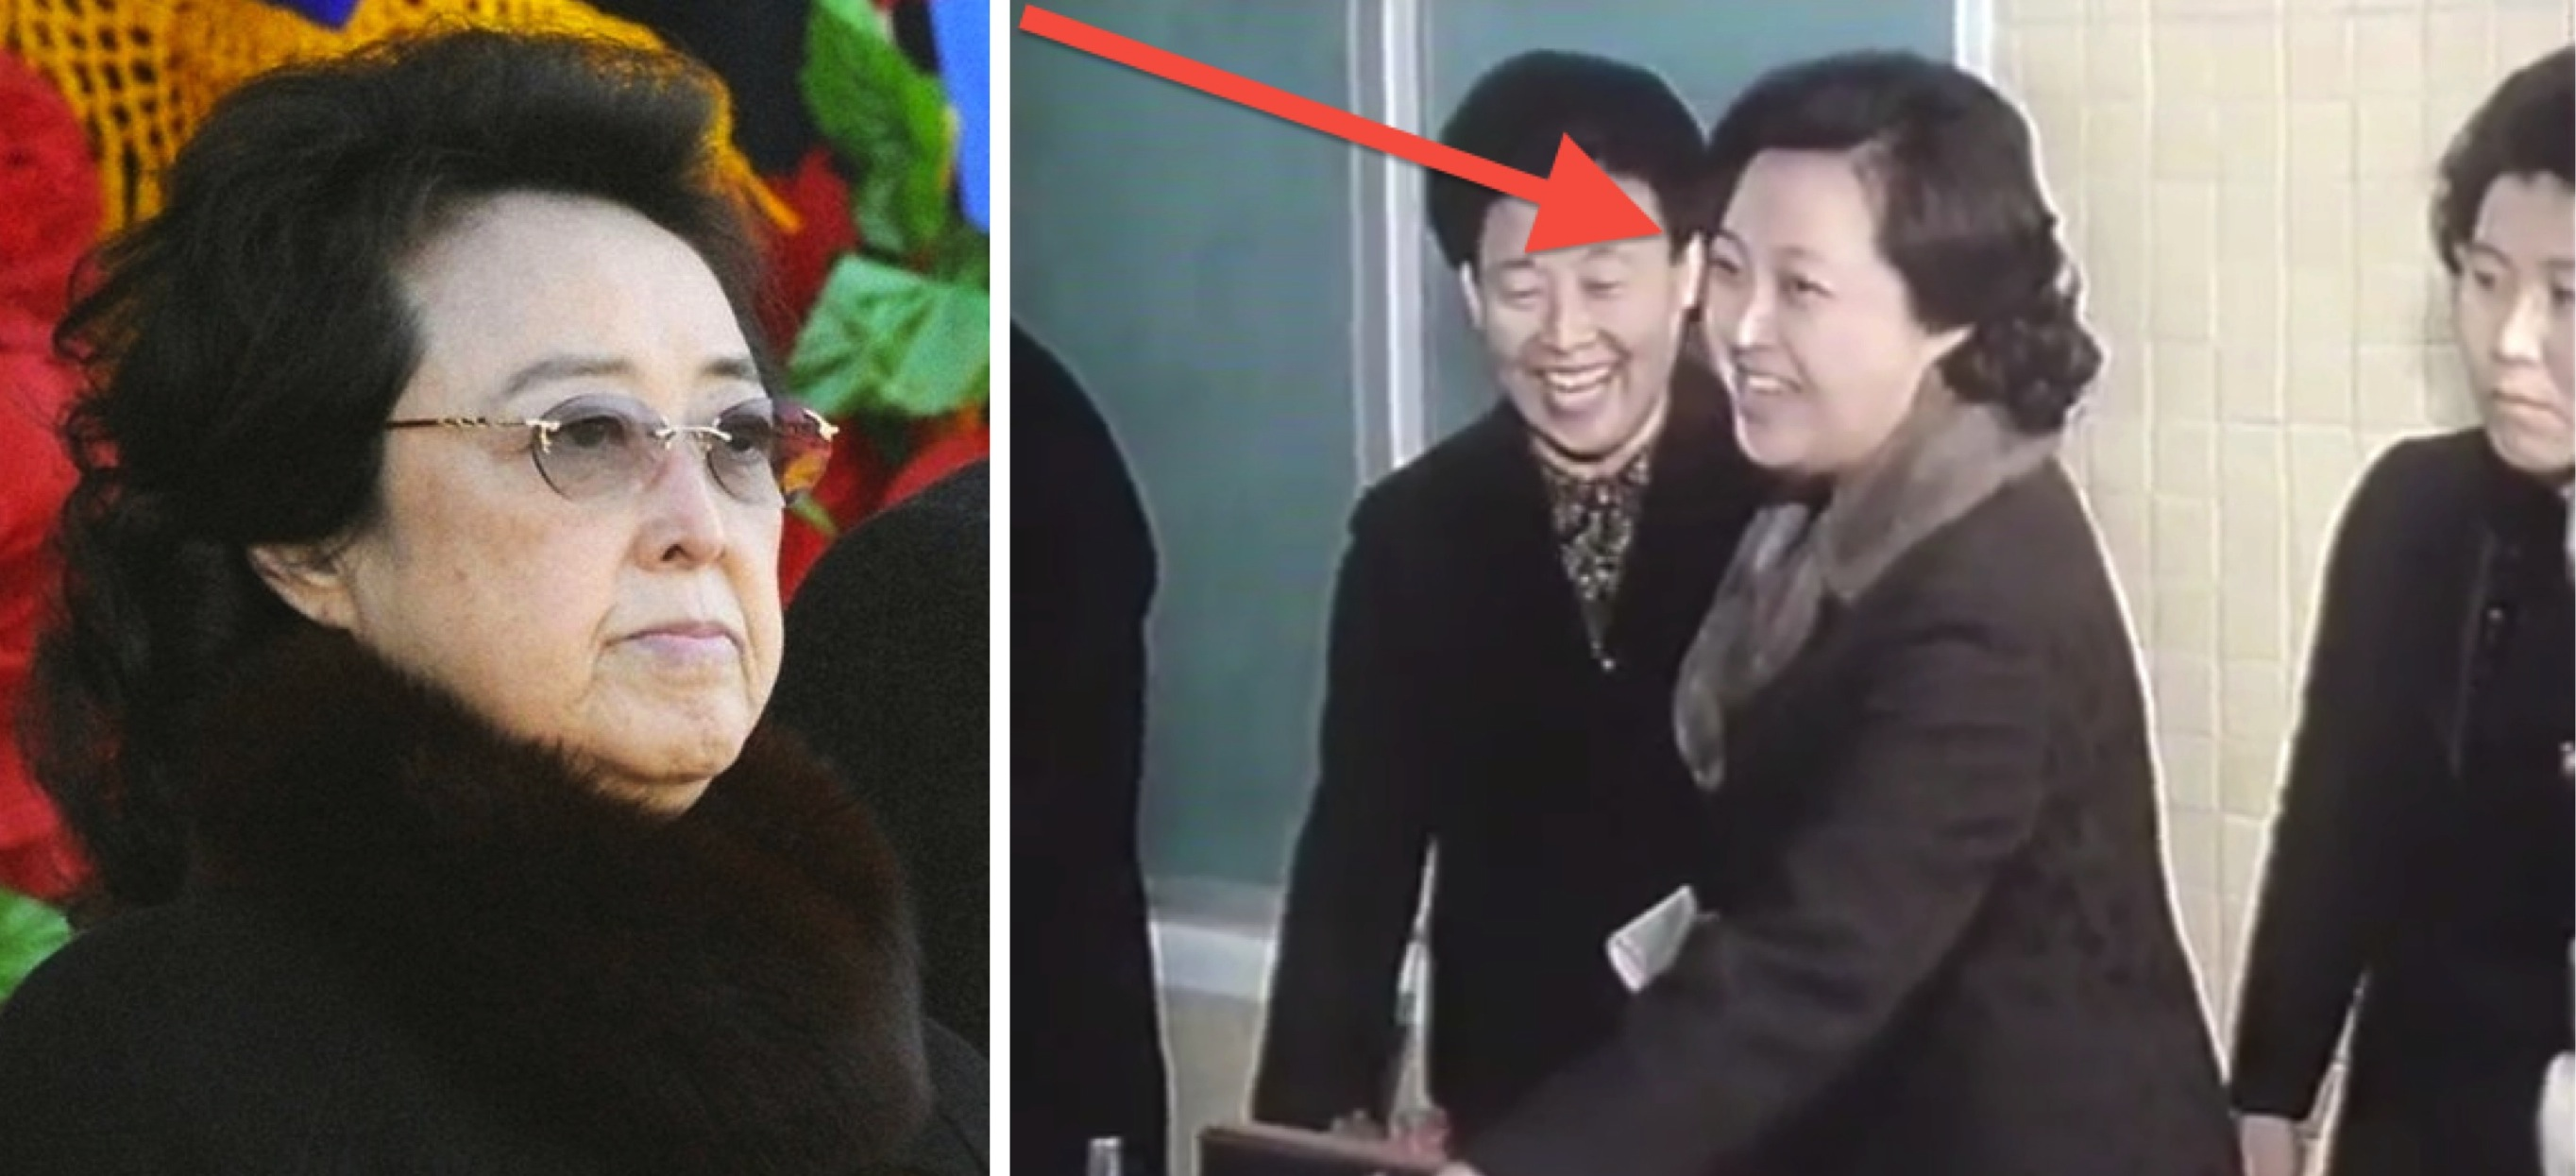 Kim Kyong Hui in 2012 (L) and in 1980 (Photo: KCNA and KCTV).